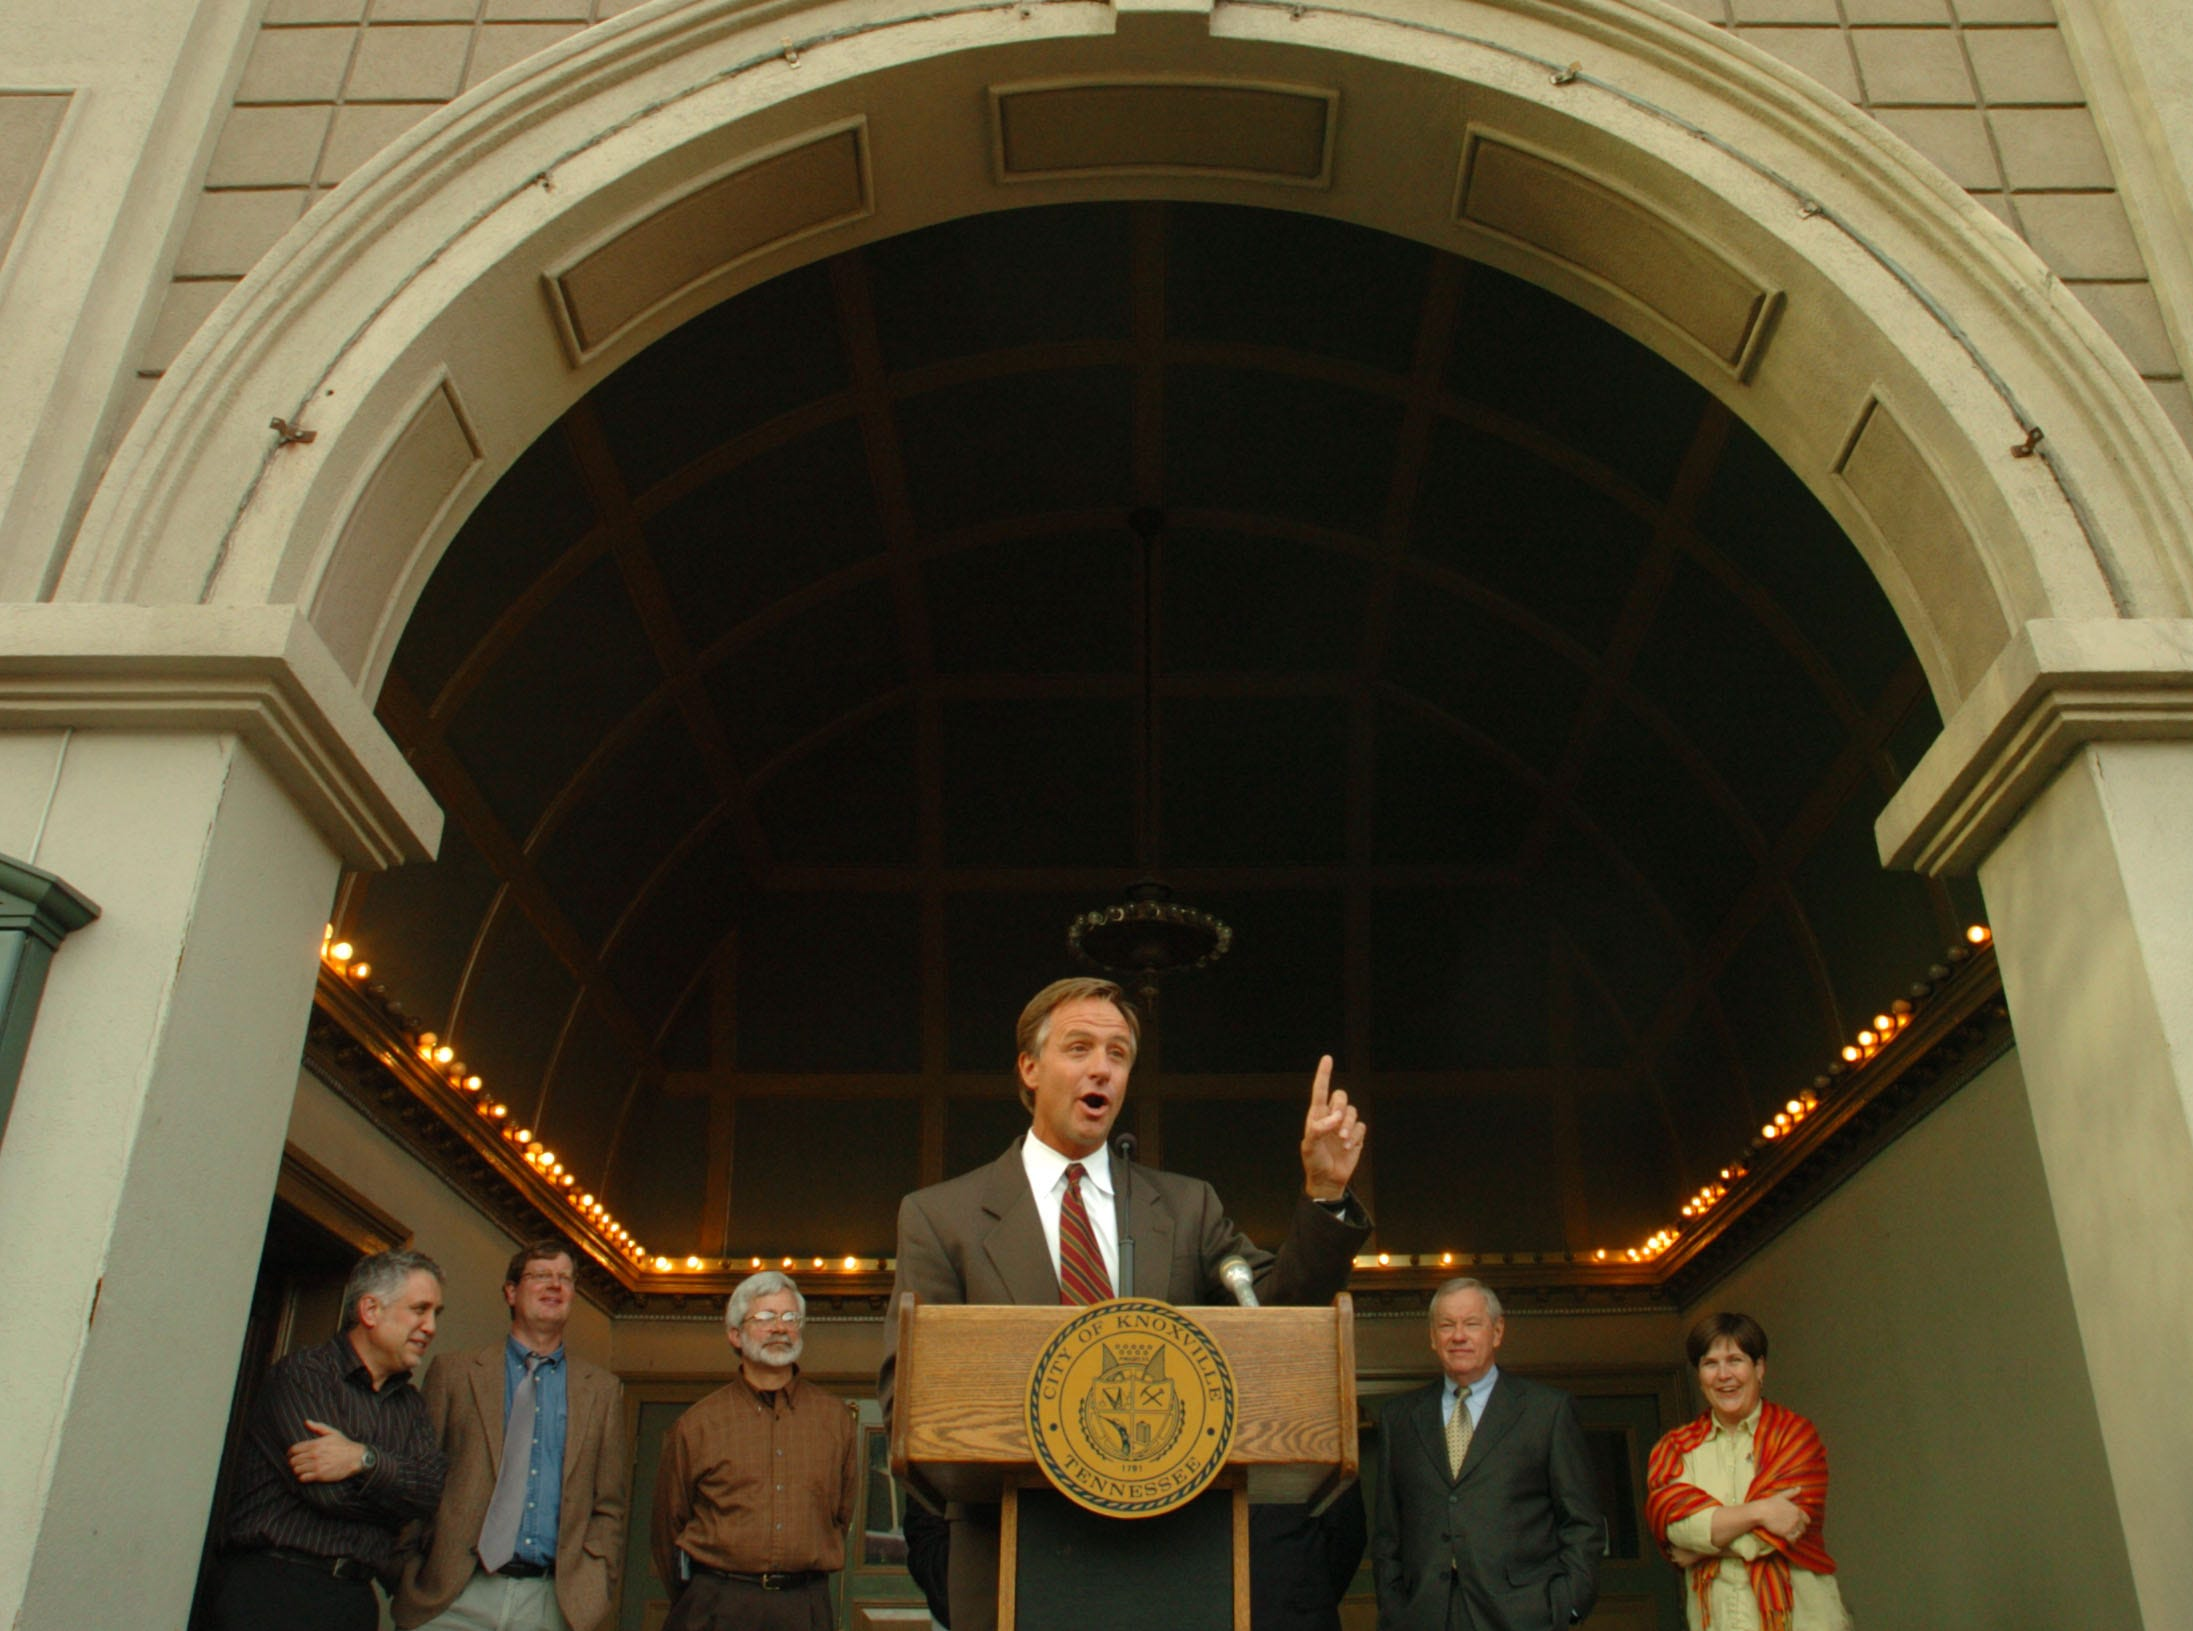 Under the arched entrance of the Bjou Theatre, Knoxville Mayor Bill Haslam announces that the Historic Tennessee Theatre Foudation will be taking over management of the Bijou Theatre on 3/31/05.